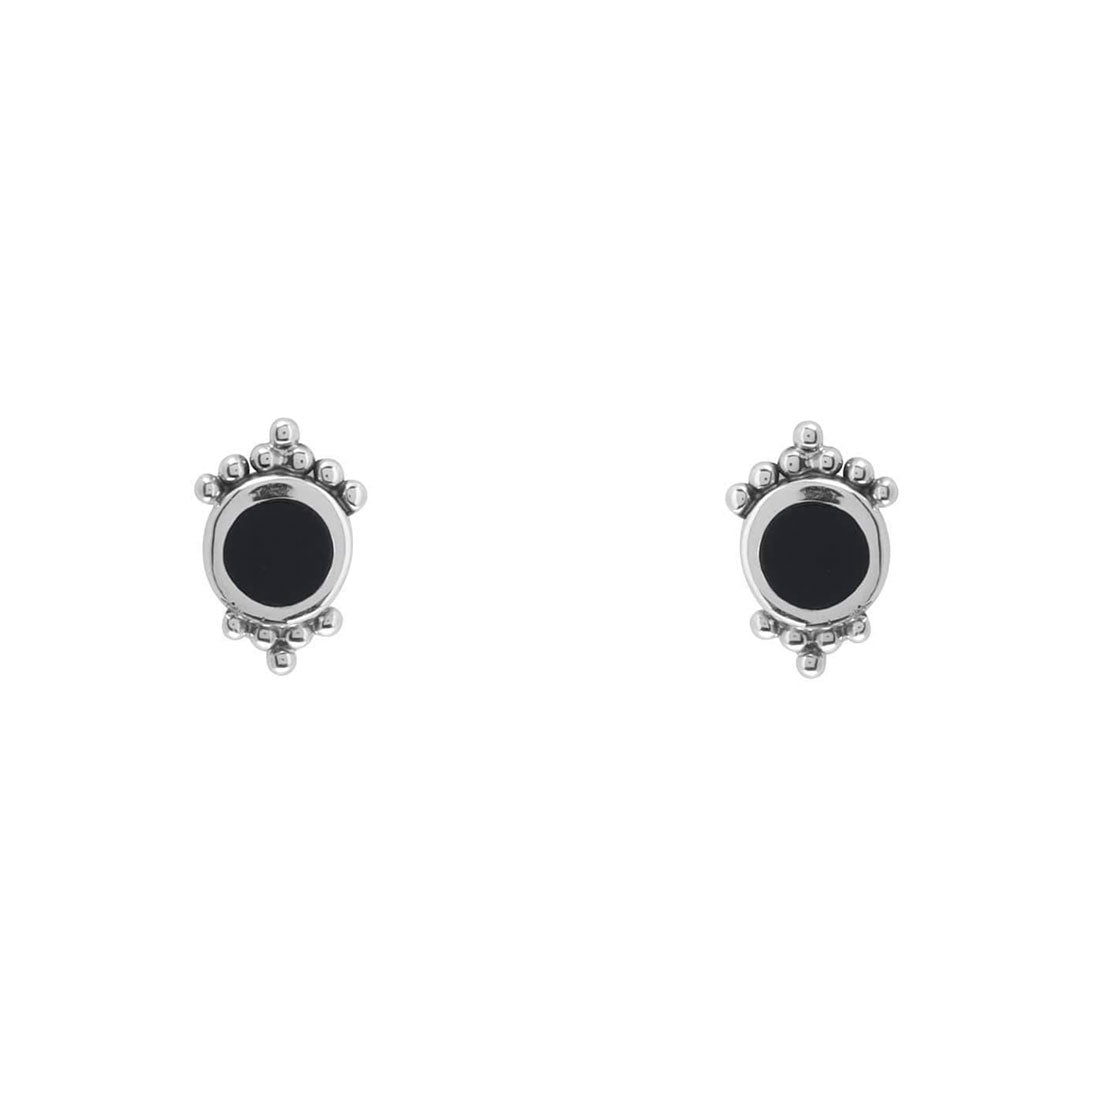 Midsummer Star Earrings Mirage Onyx Studs